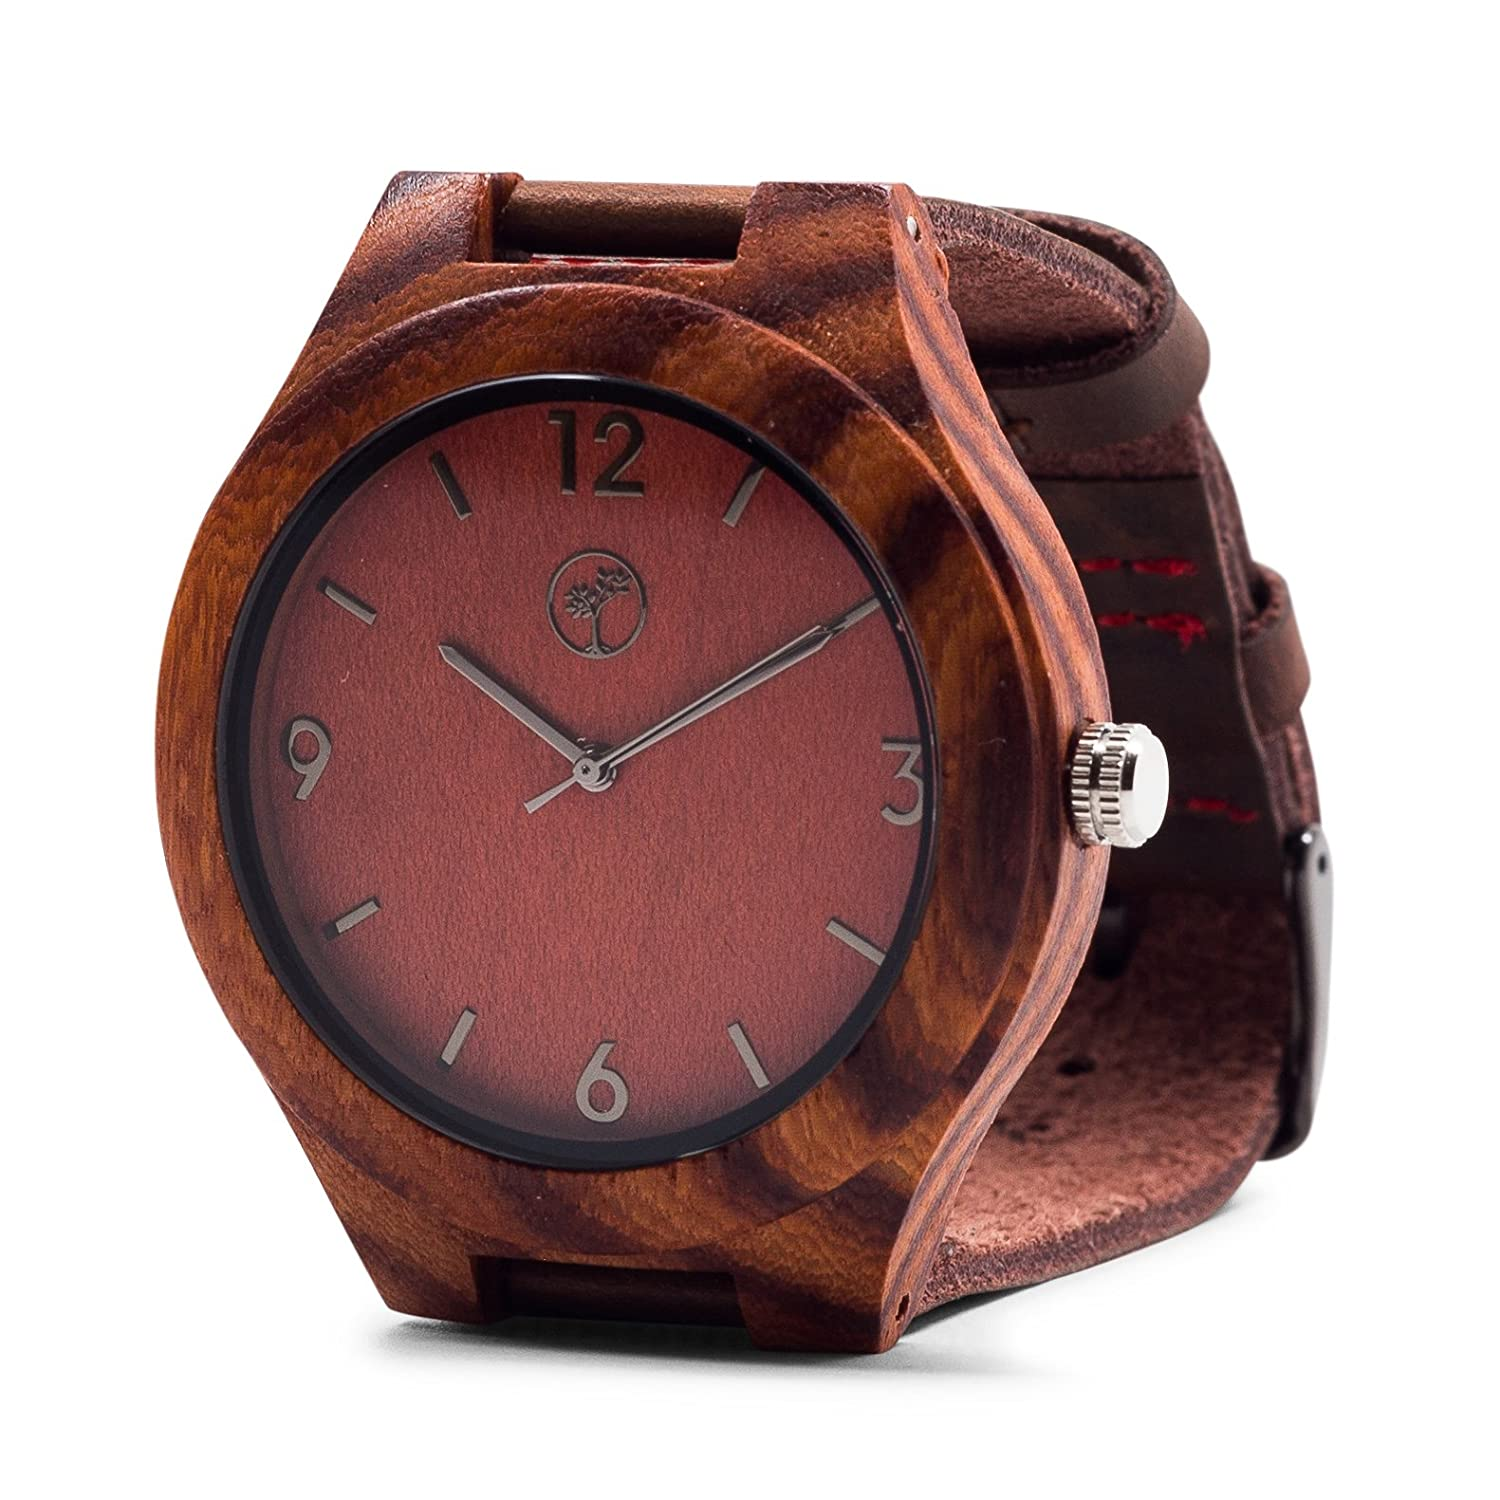 mens big wooden wood dress watches wristwatch arrival new women ladies quartz luxury sandalwood watch montr hours men